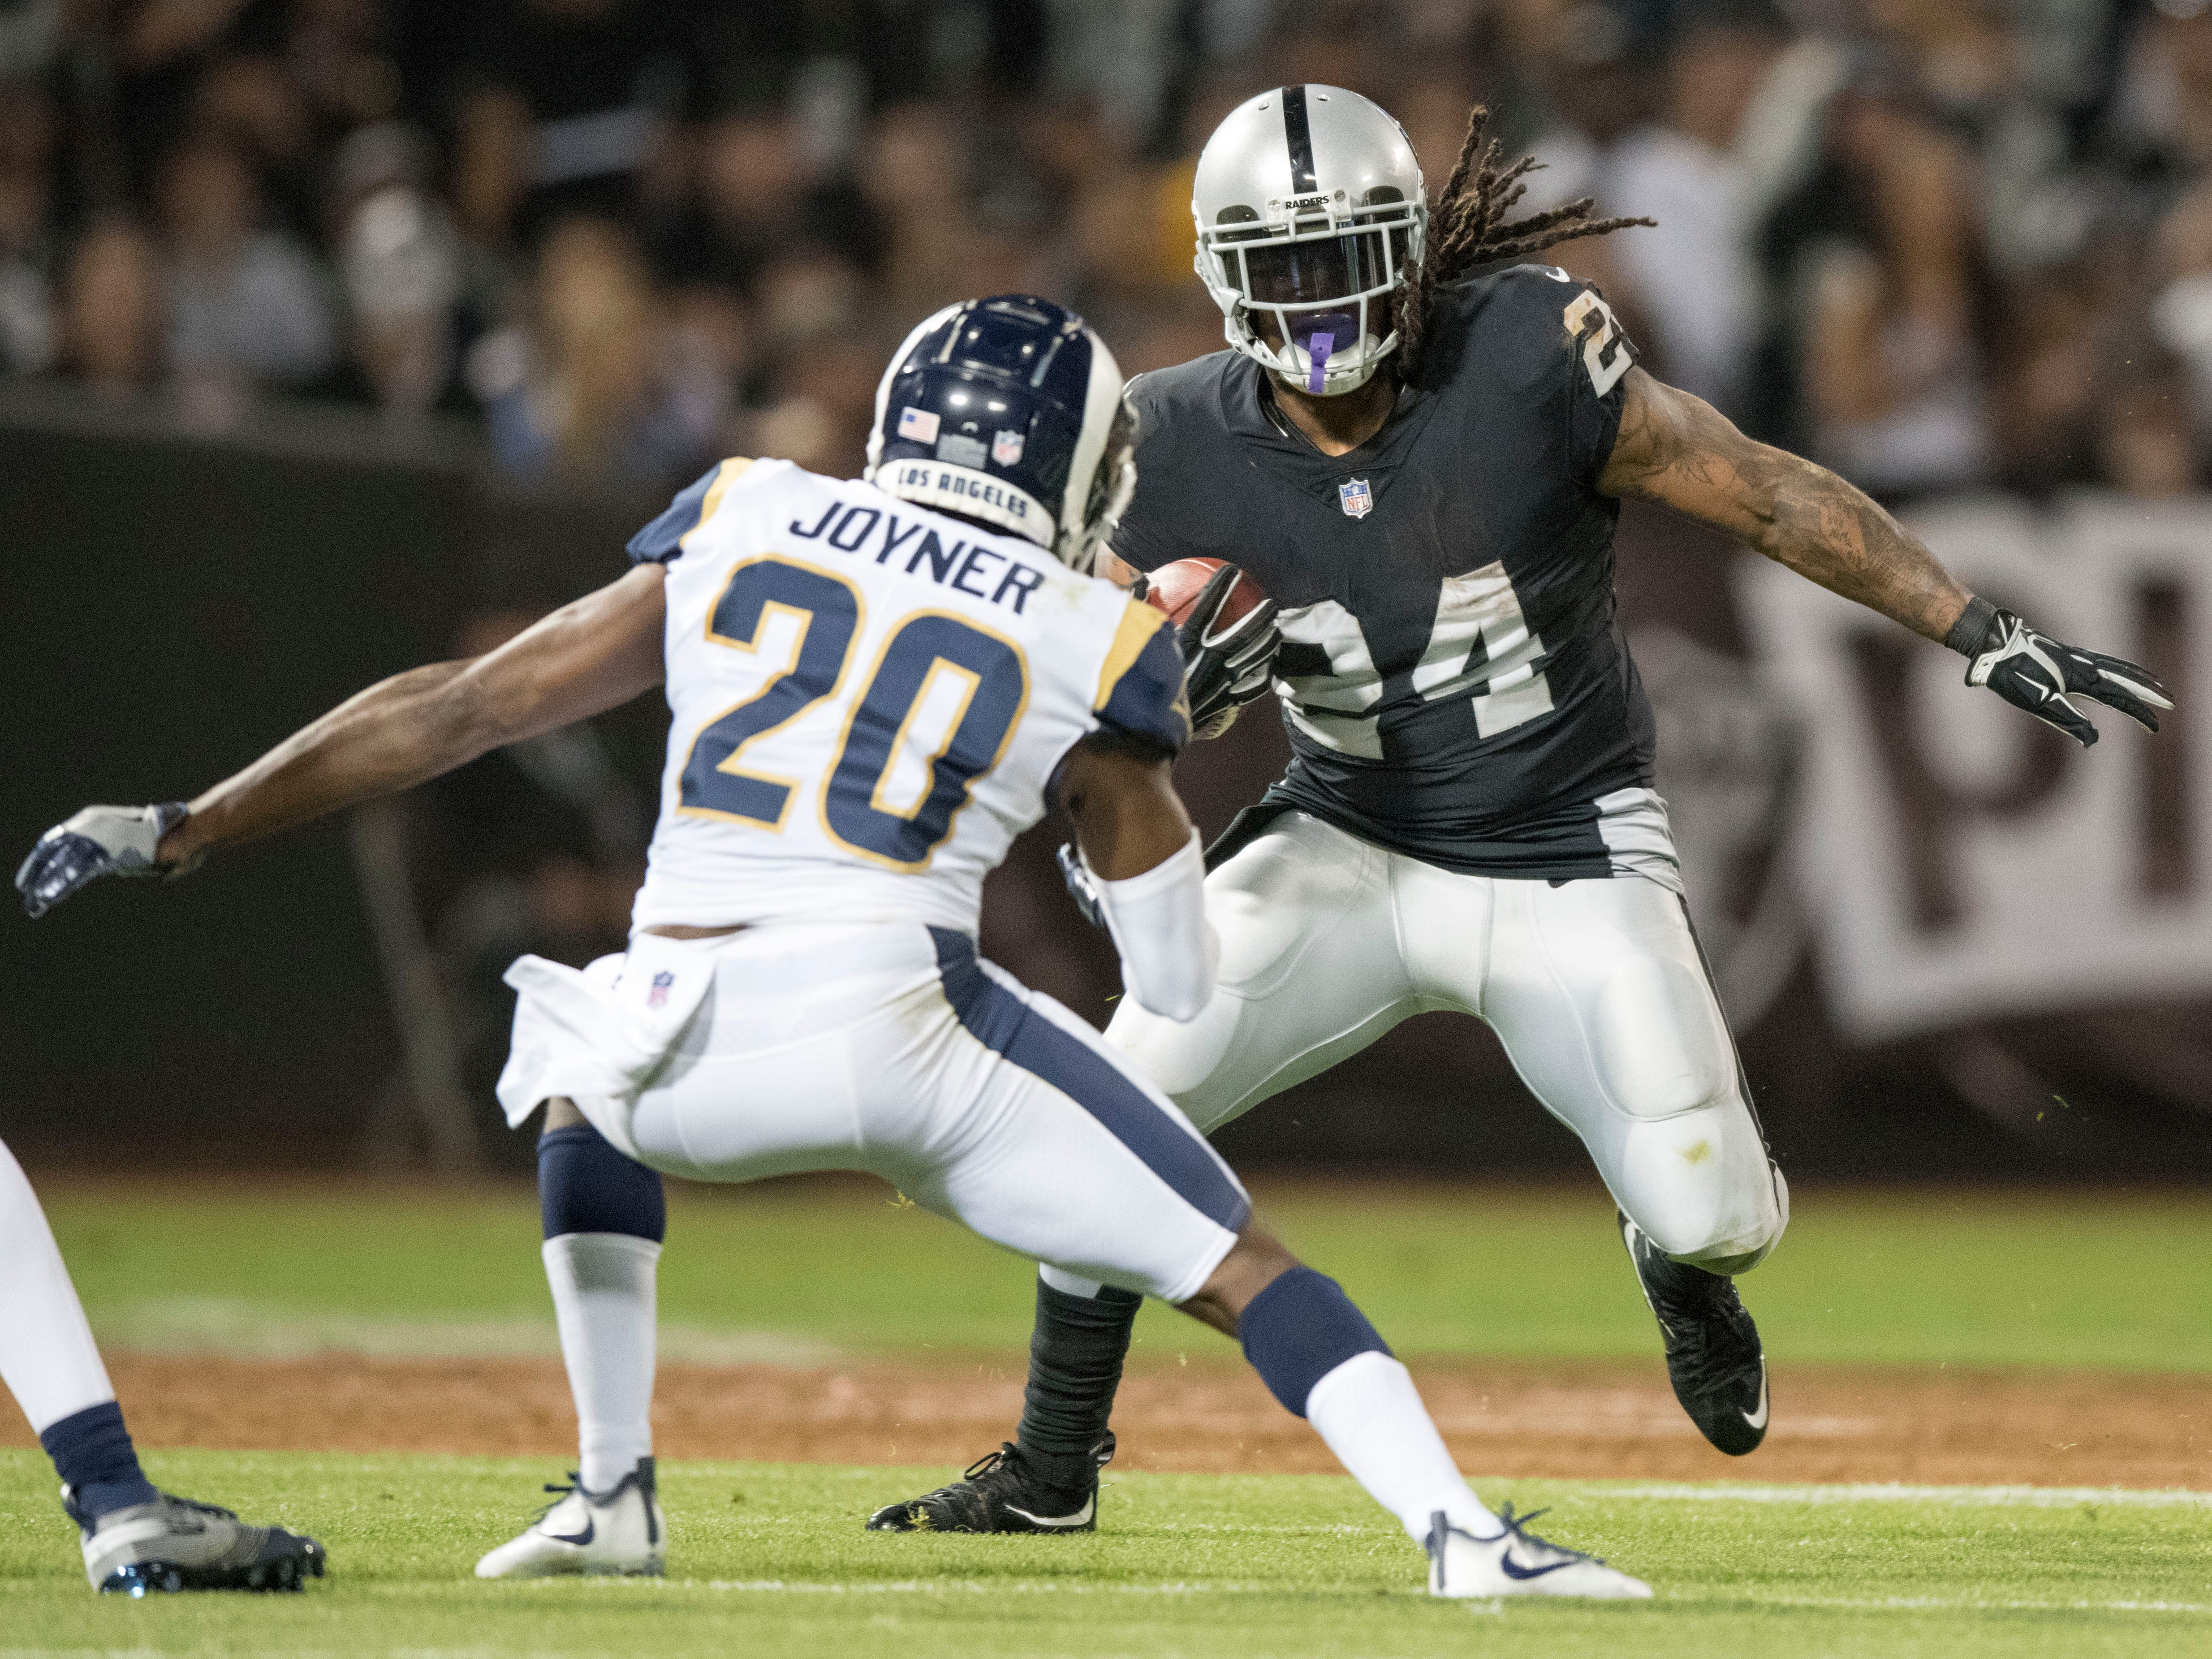 Oakland Raiders running back Marshawn Lynch runs the football against Los Angeles Rams safety Lamarcus Joyner during the first quarter at Oakland Coliseum.